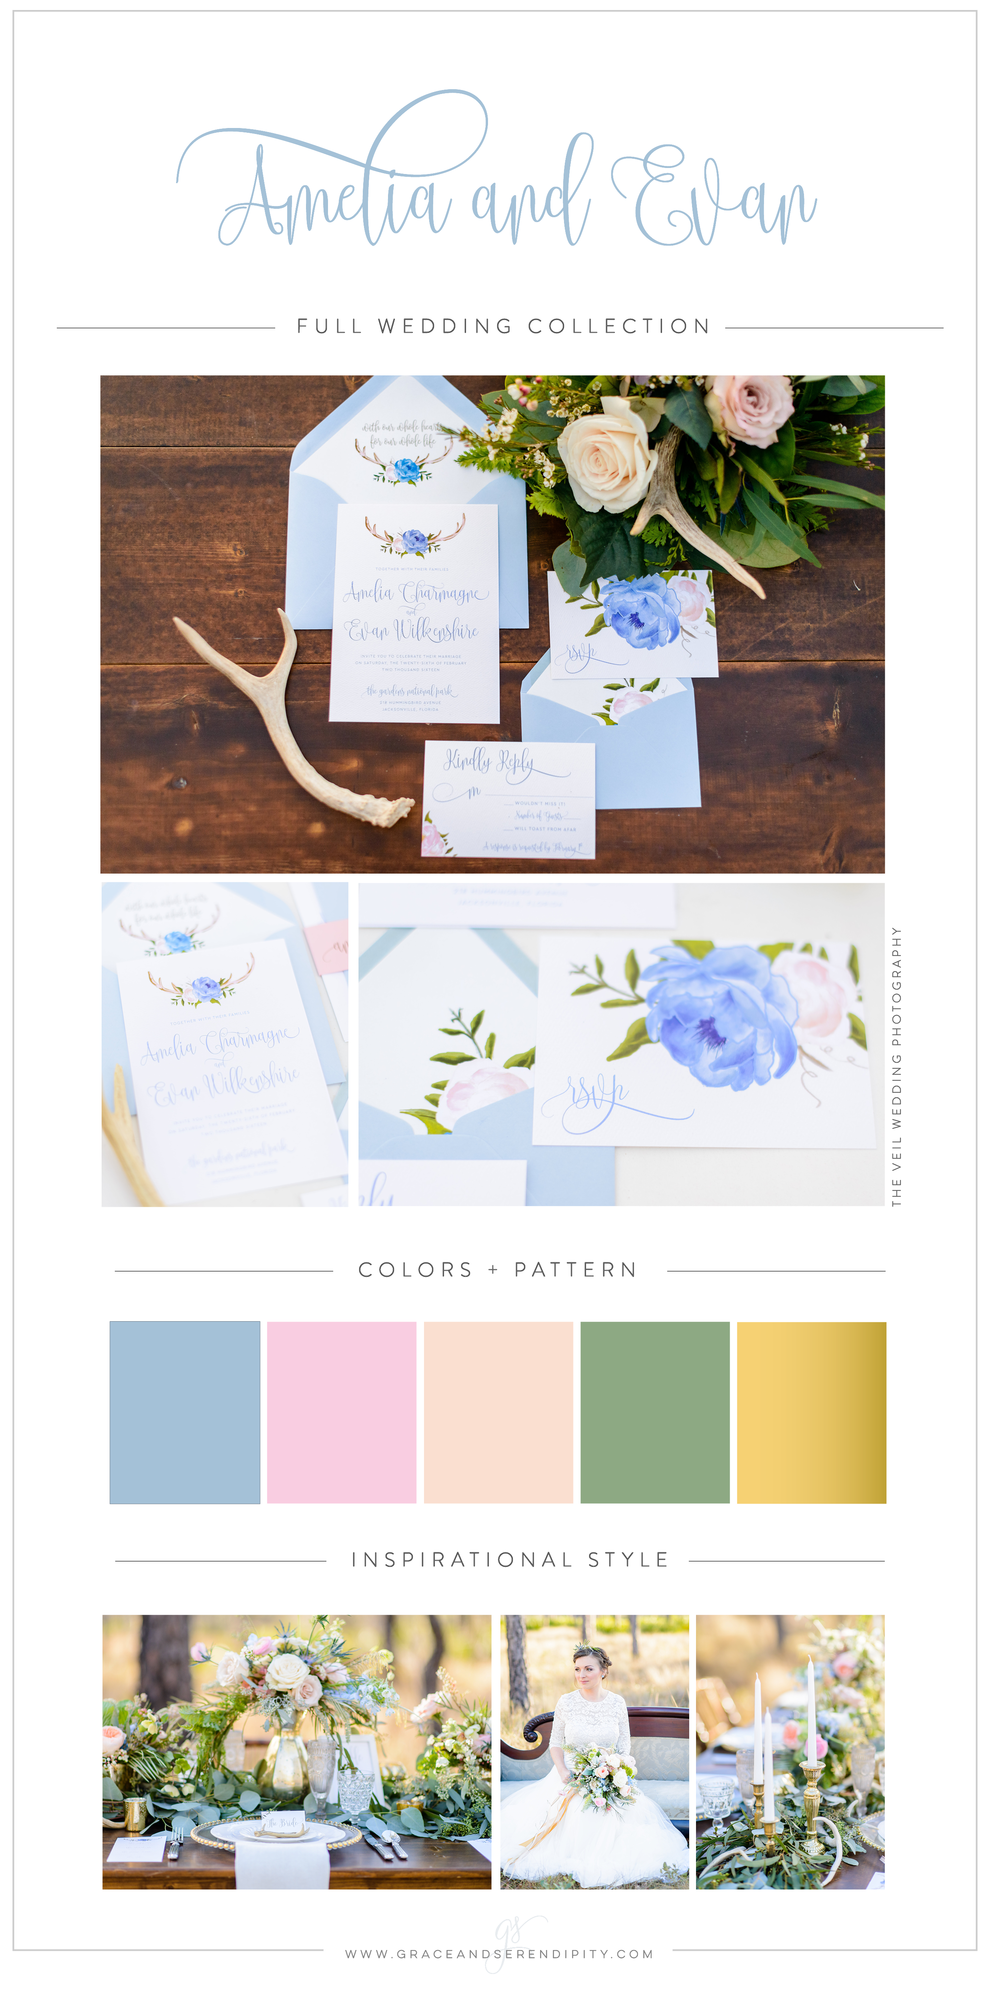 Pantone Inspired Antler Boho Romantic Color Palette - pink, blue, and peach color palette and wedding design by Grace and Serendipity